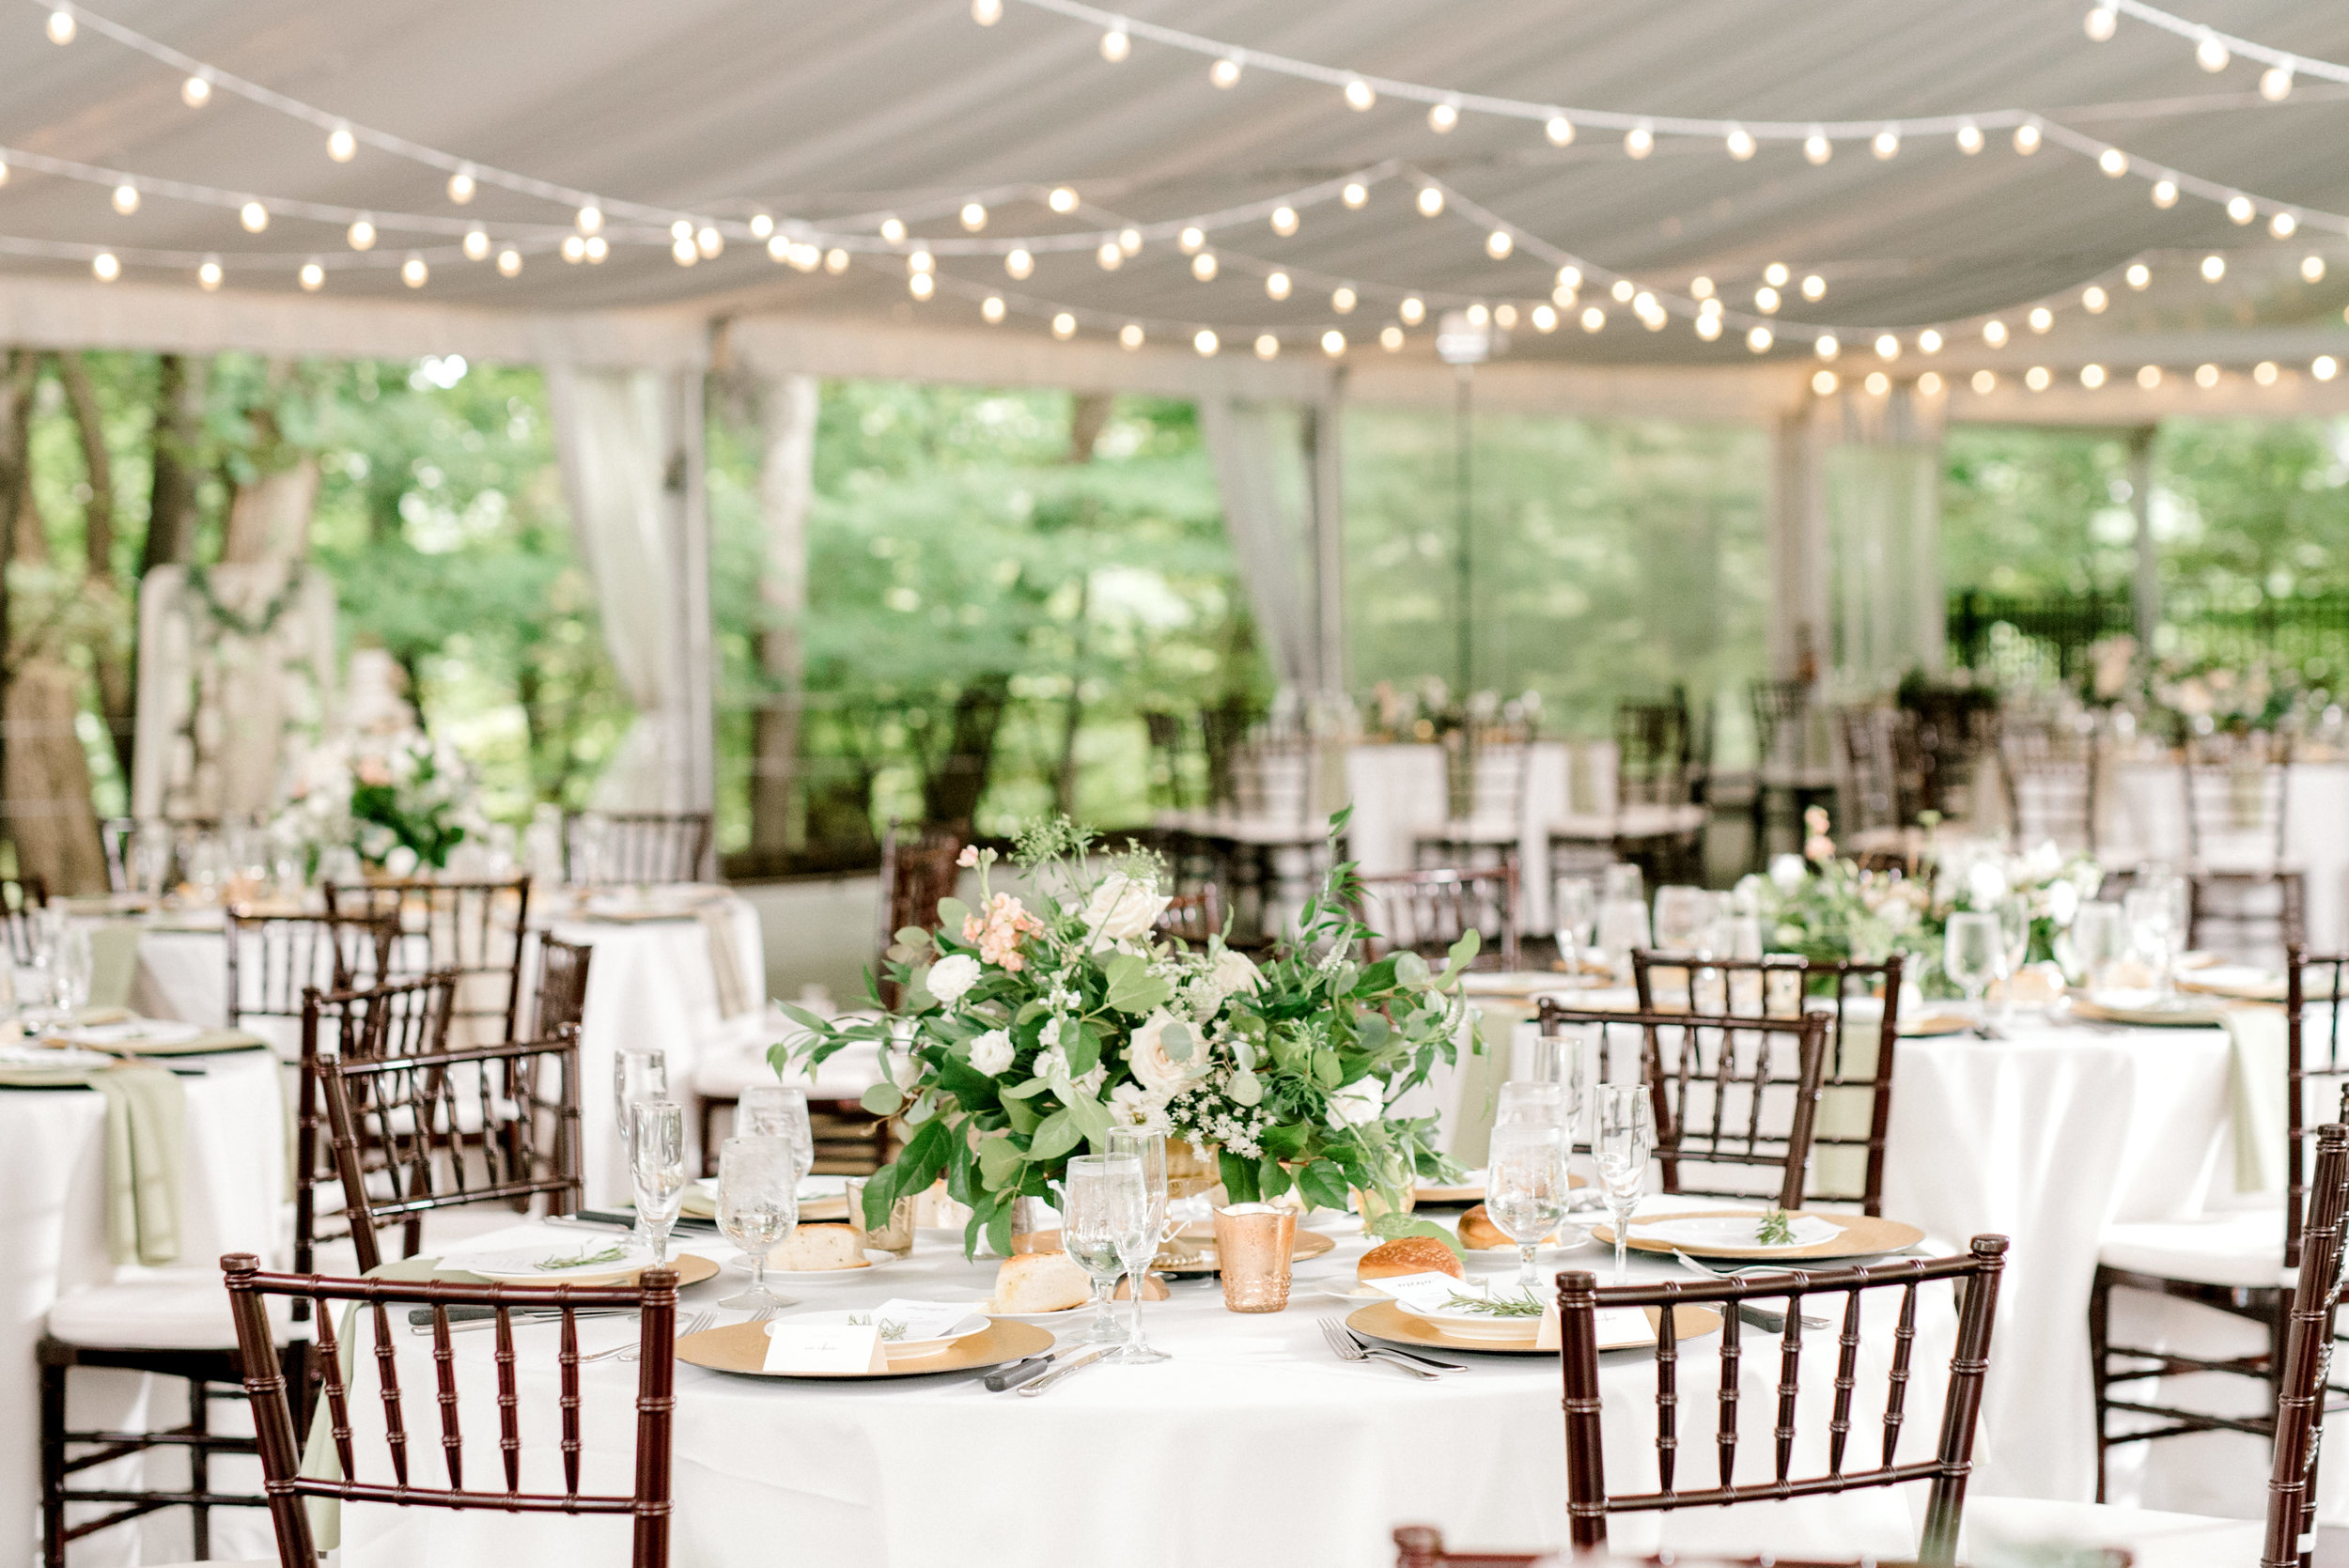 Classic whites and greens with a bit of whimsy in string lights pulled together the reception tent for this bright boho chic Tyler Gardens wedding in Bucks County.